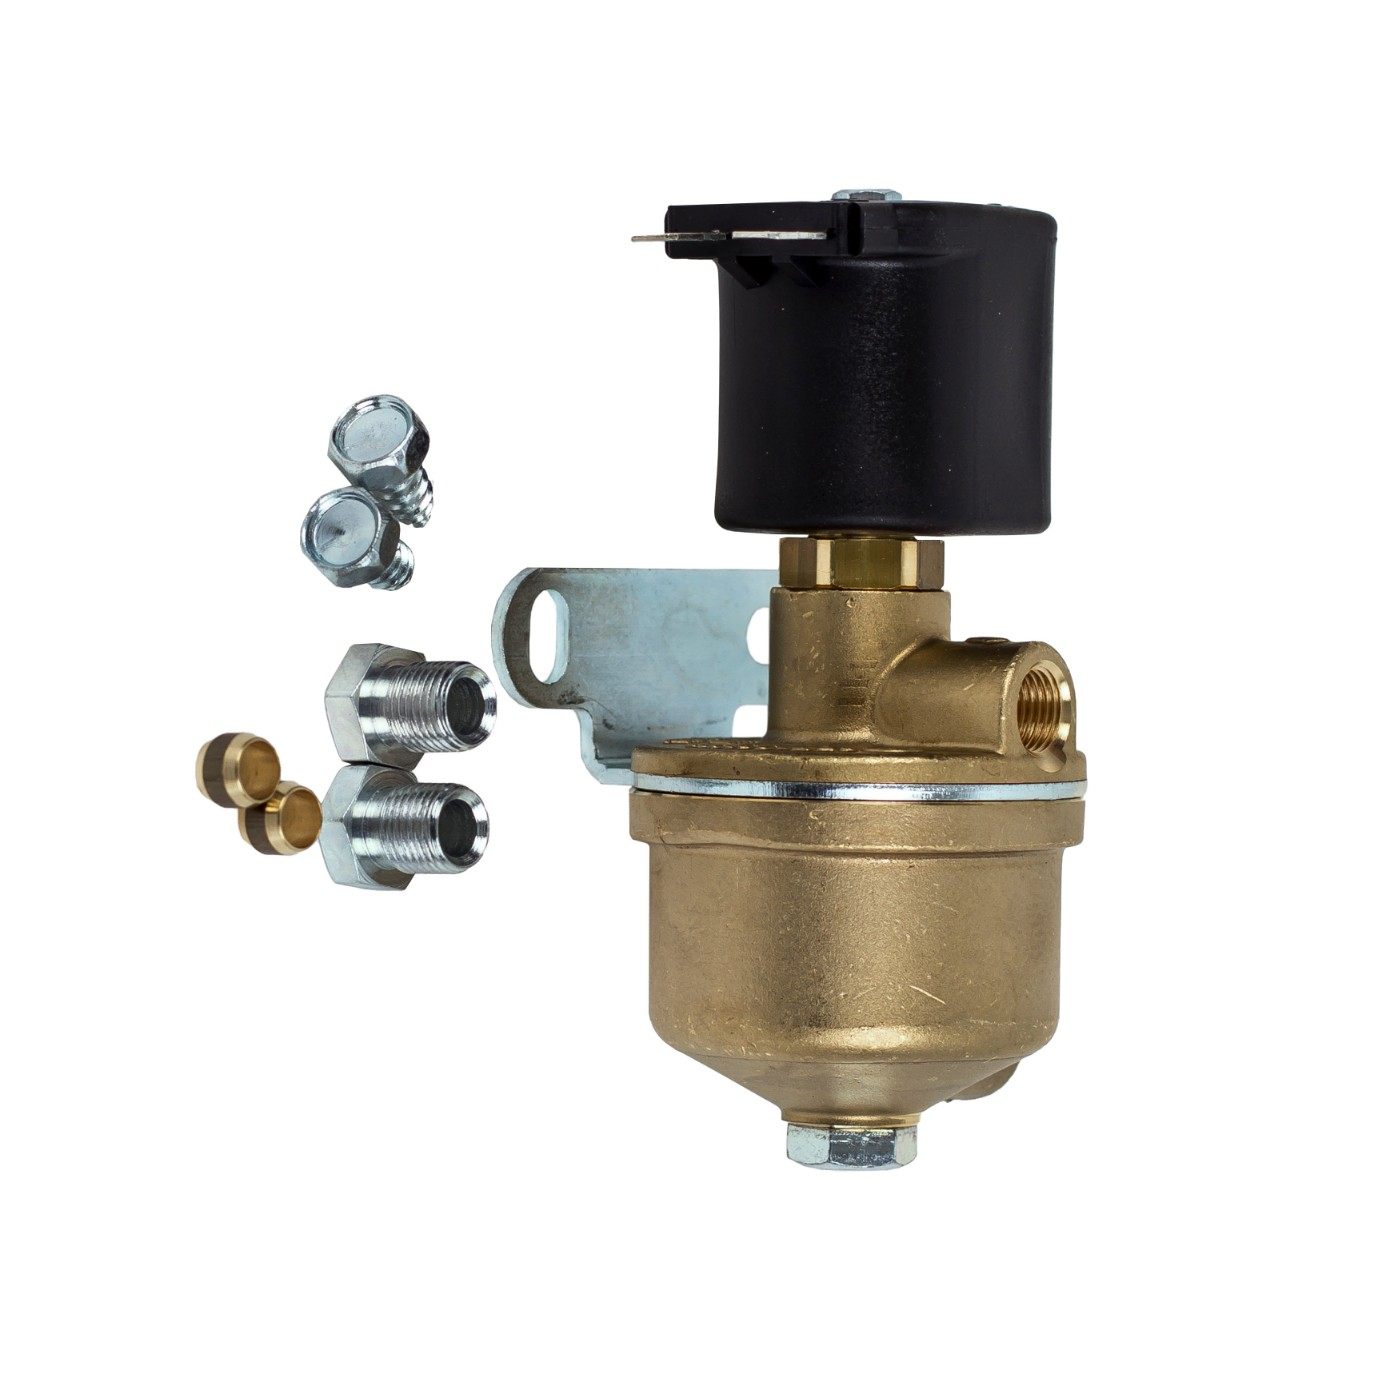 Application of LPG-CNG Gas Shut-off Solenoid Valve Coils